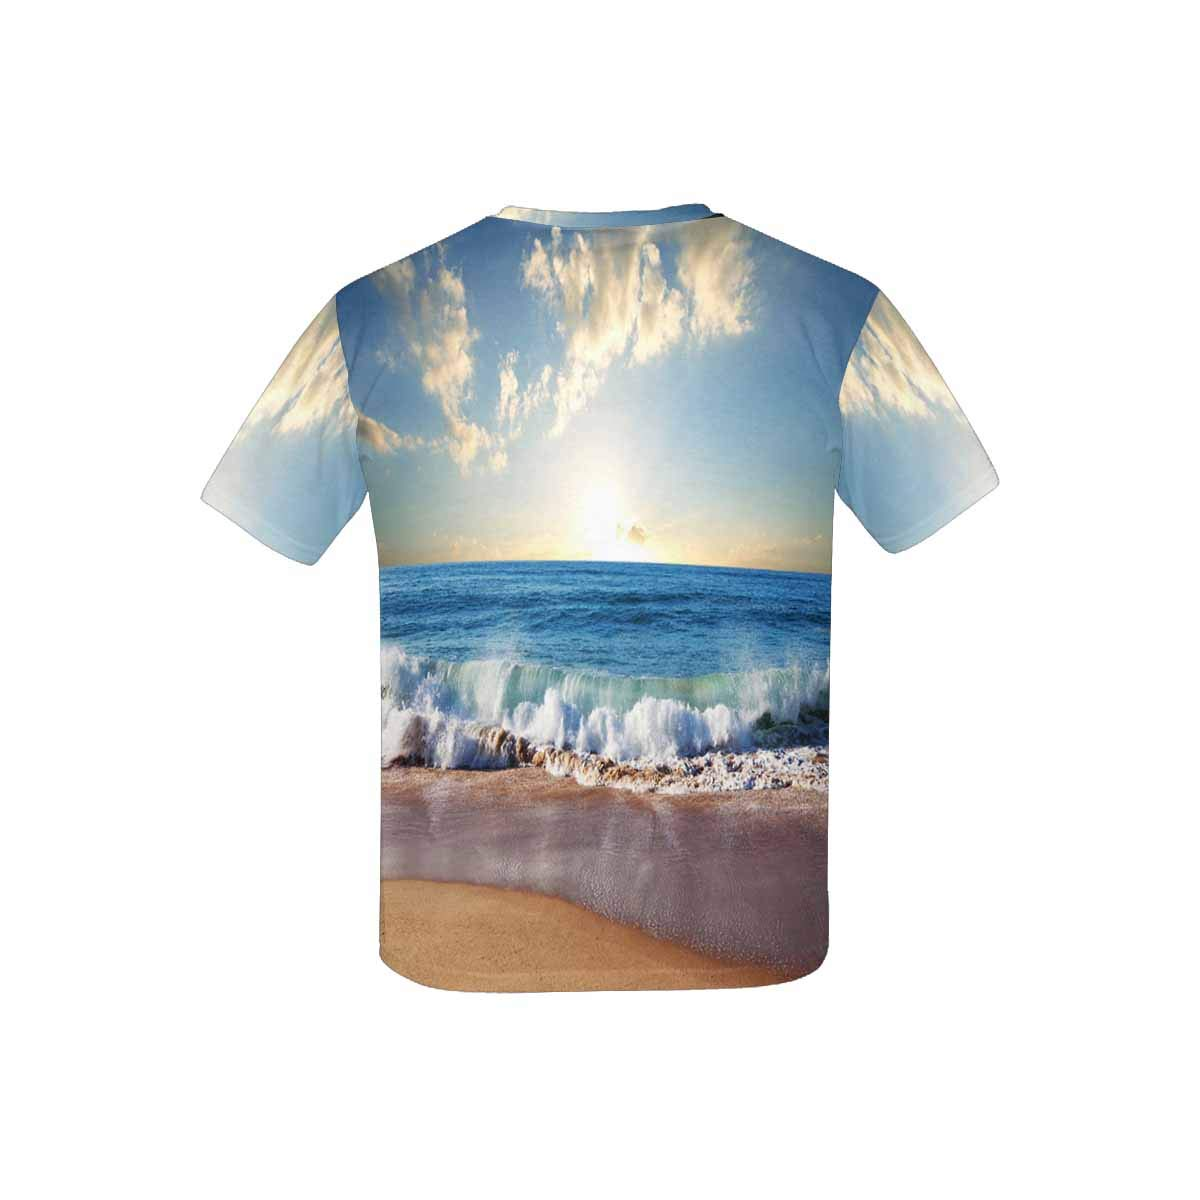 INTERESTPRINT T-Shirt in Youth XS-XL